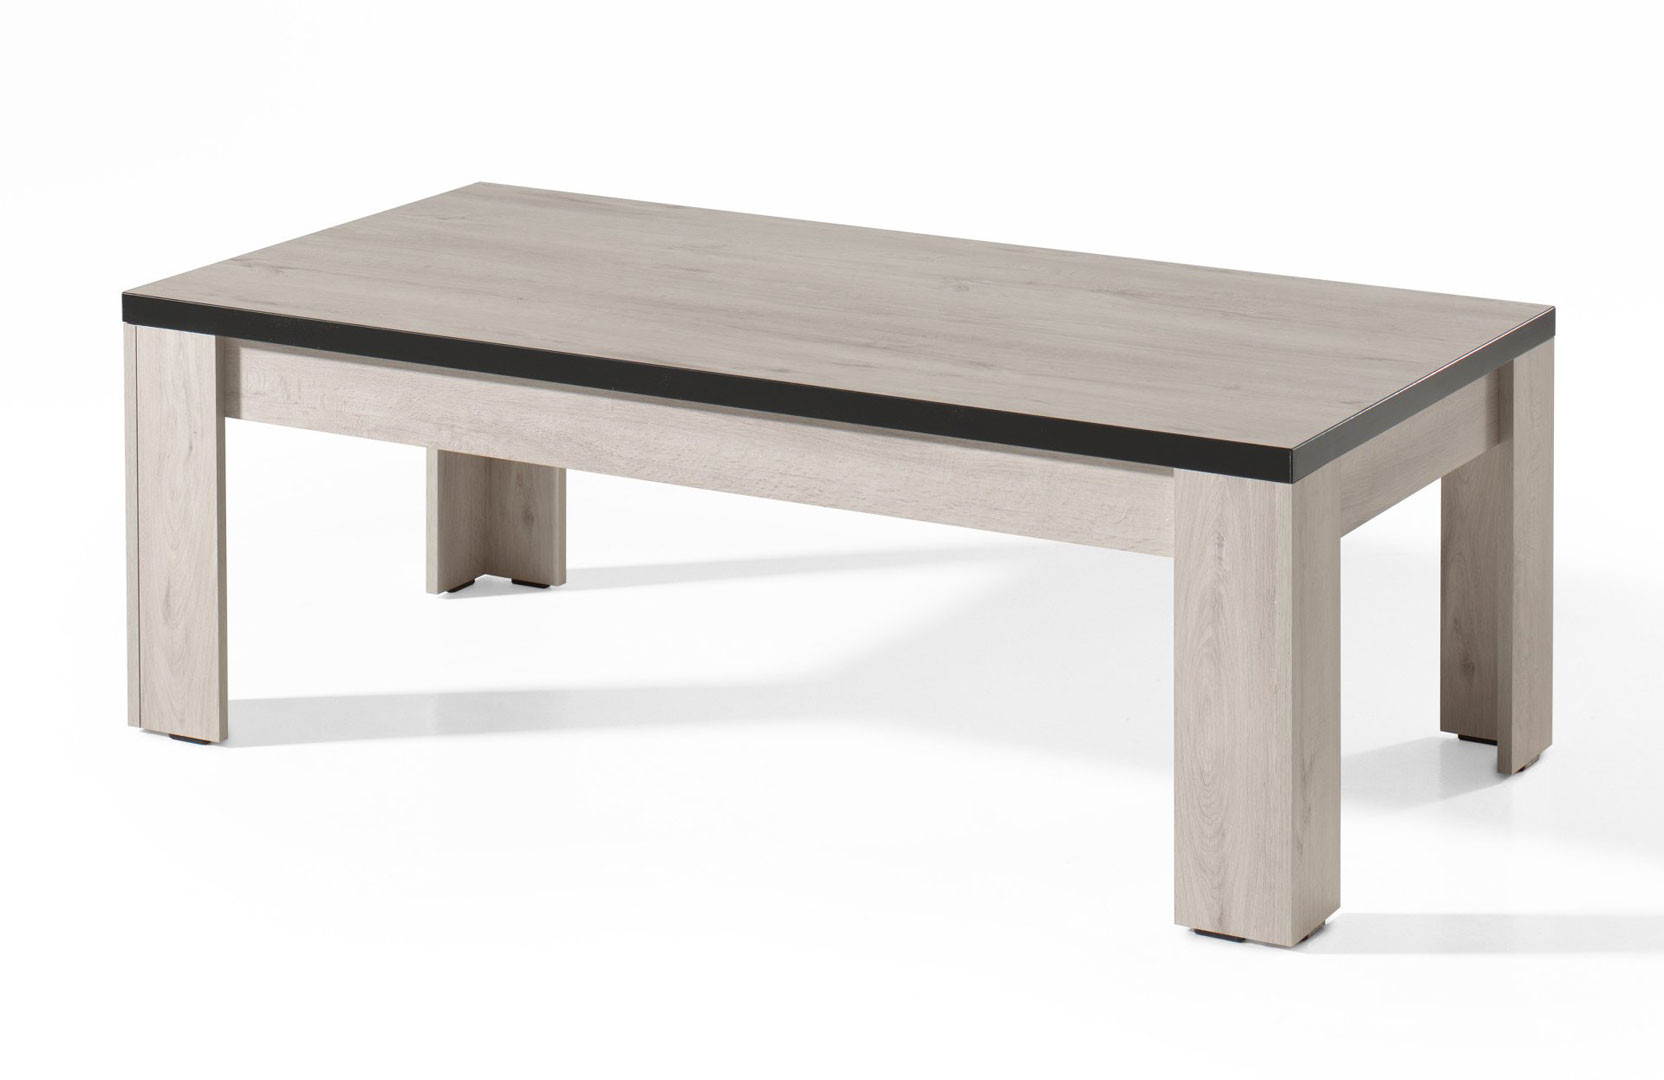 Table basse contemporaine chêne blanchi Bianca